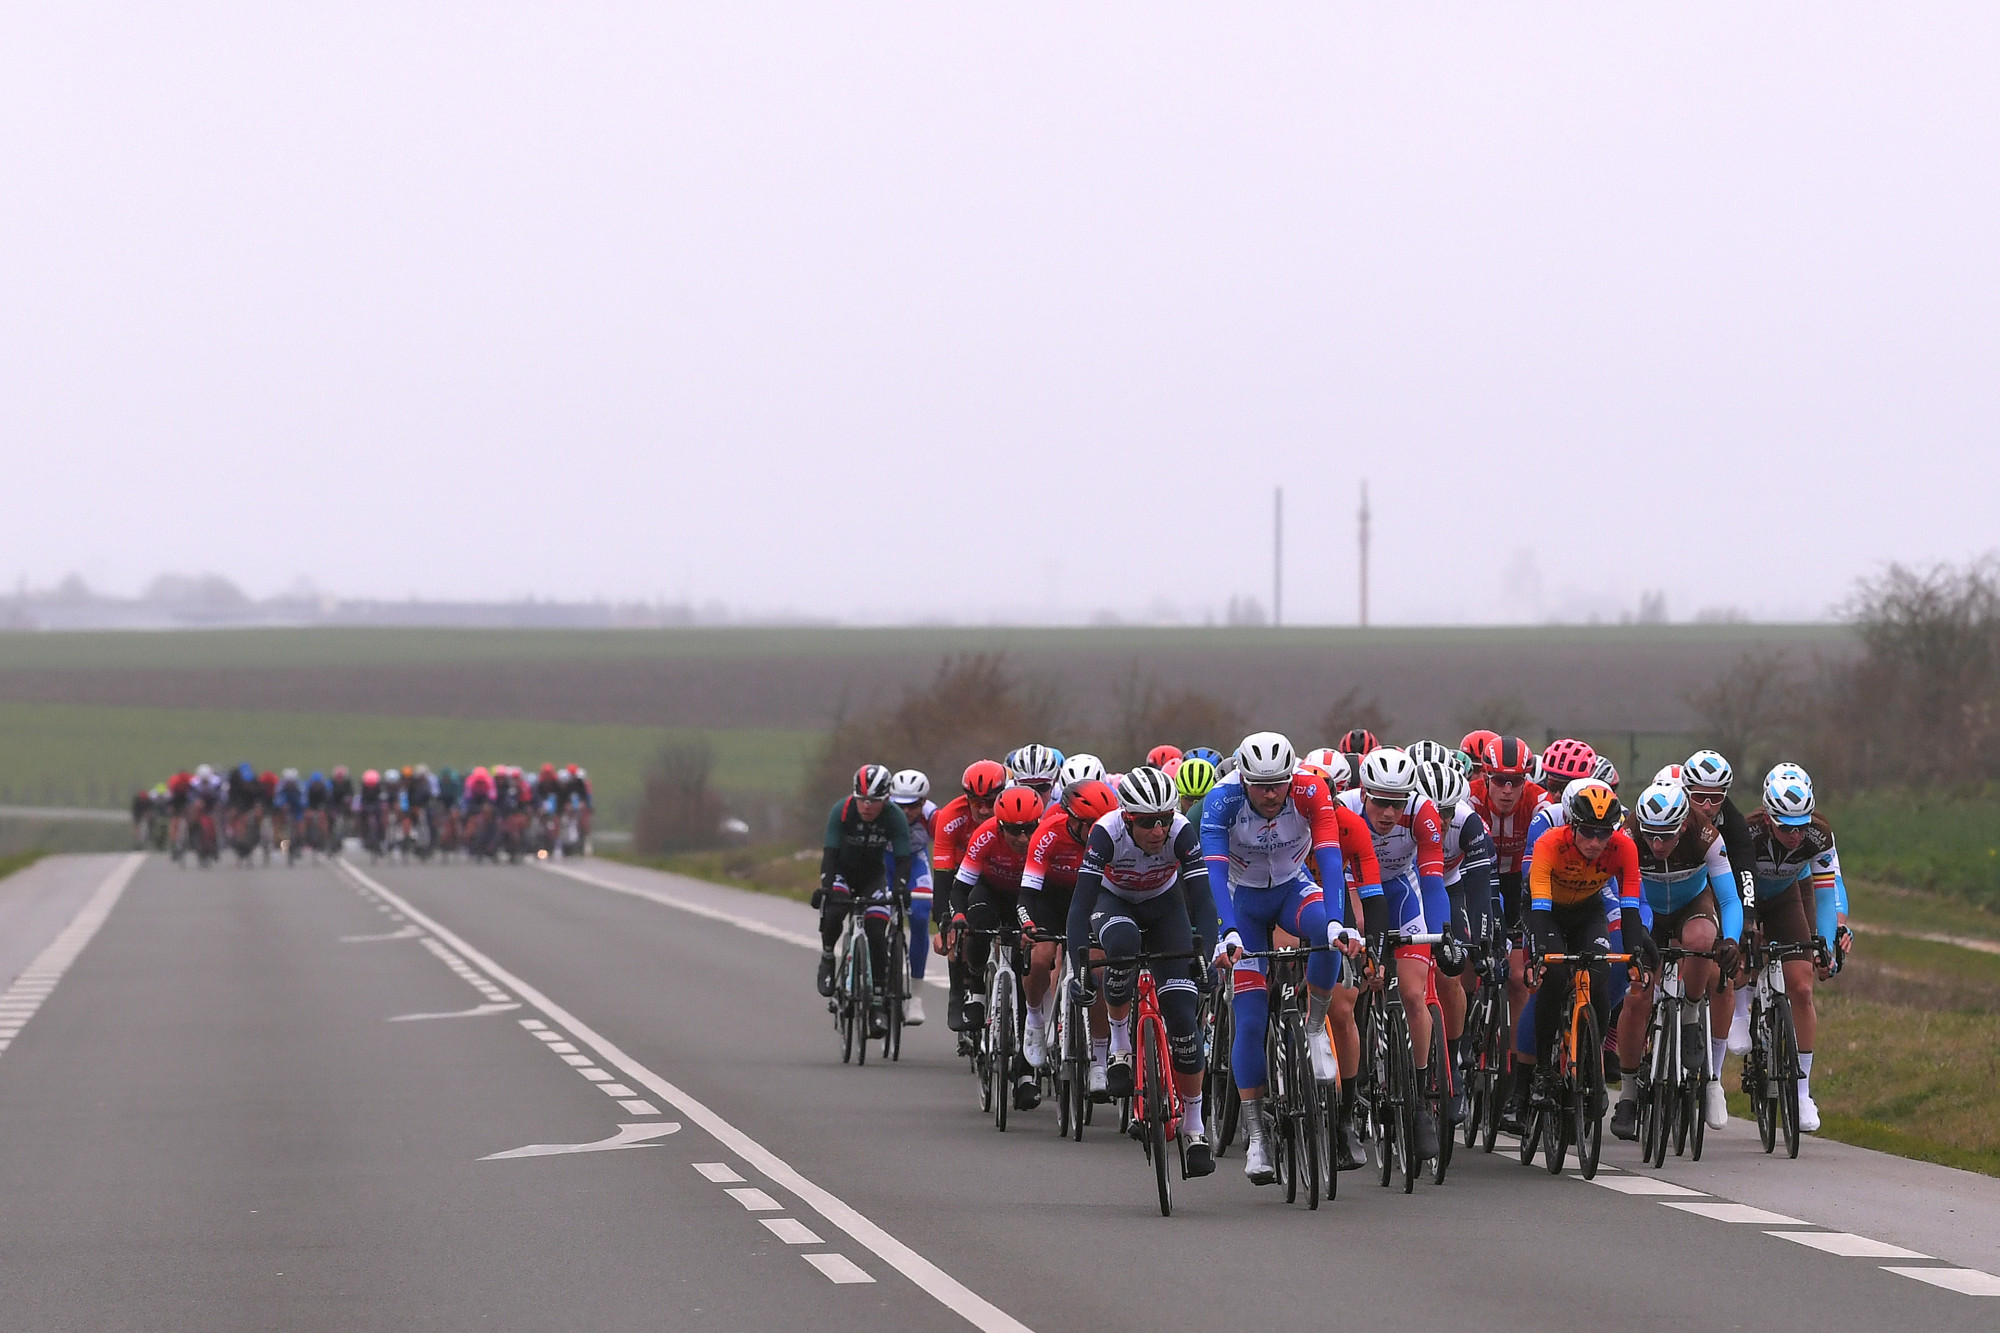 Nans Peters | Paris-Nice - Stage 2